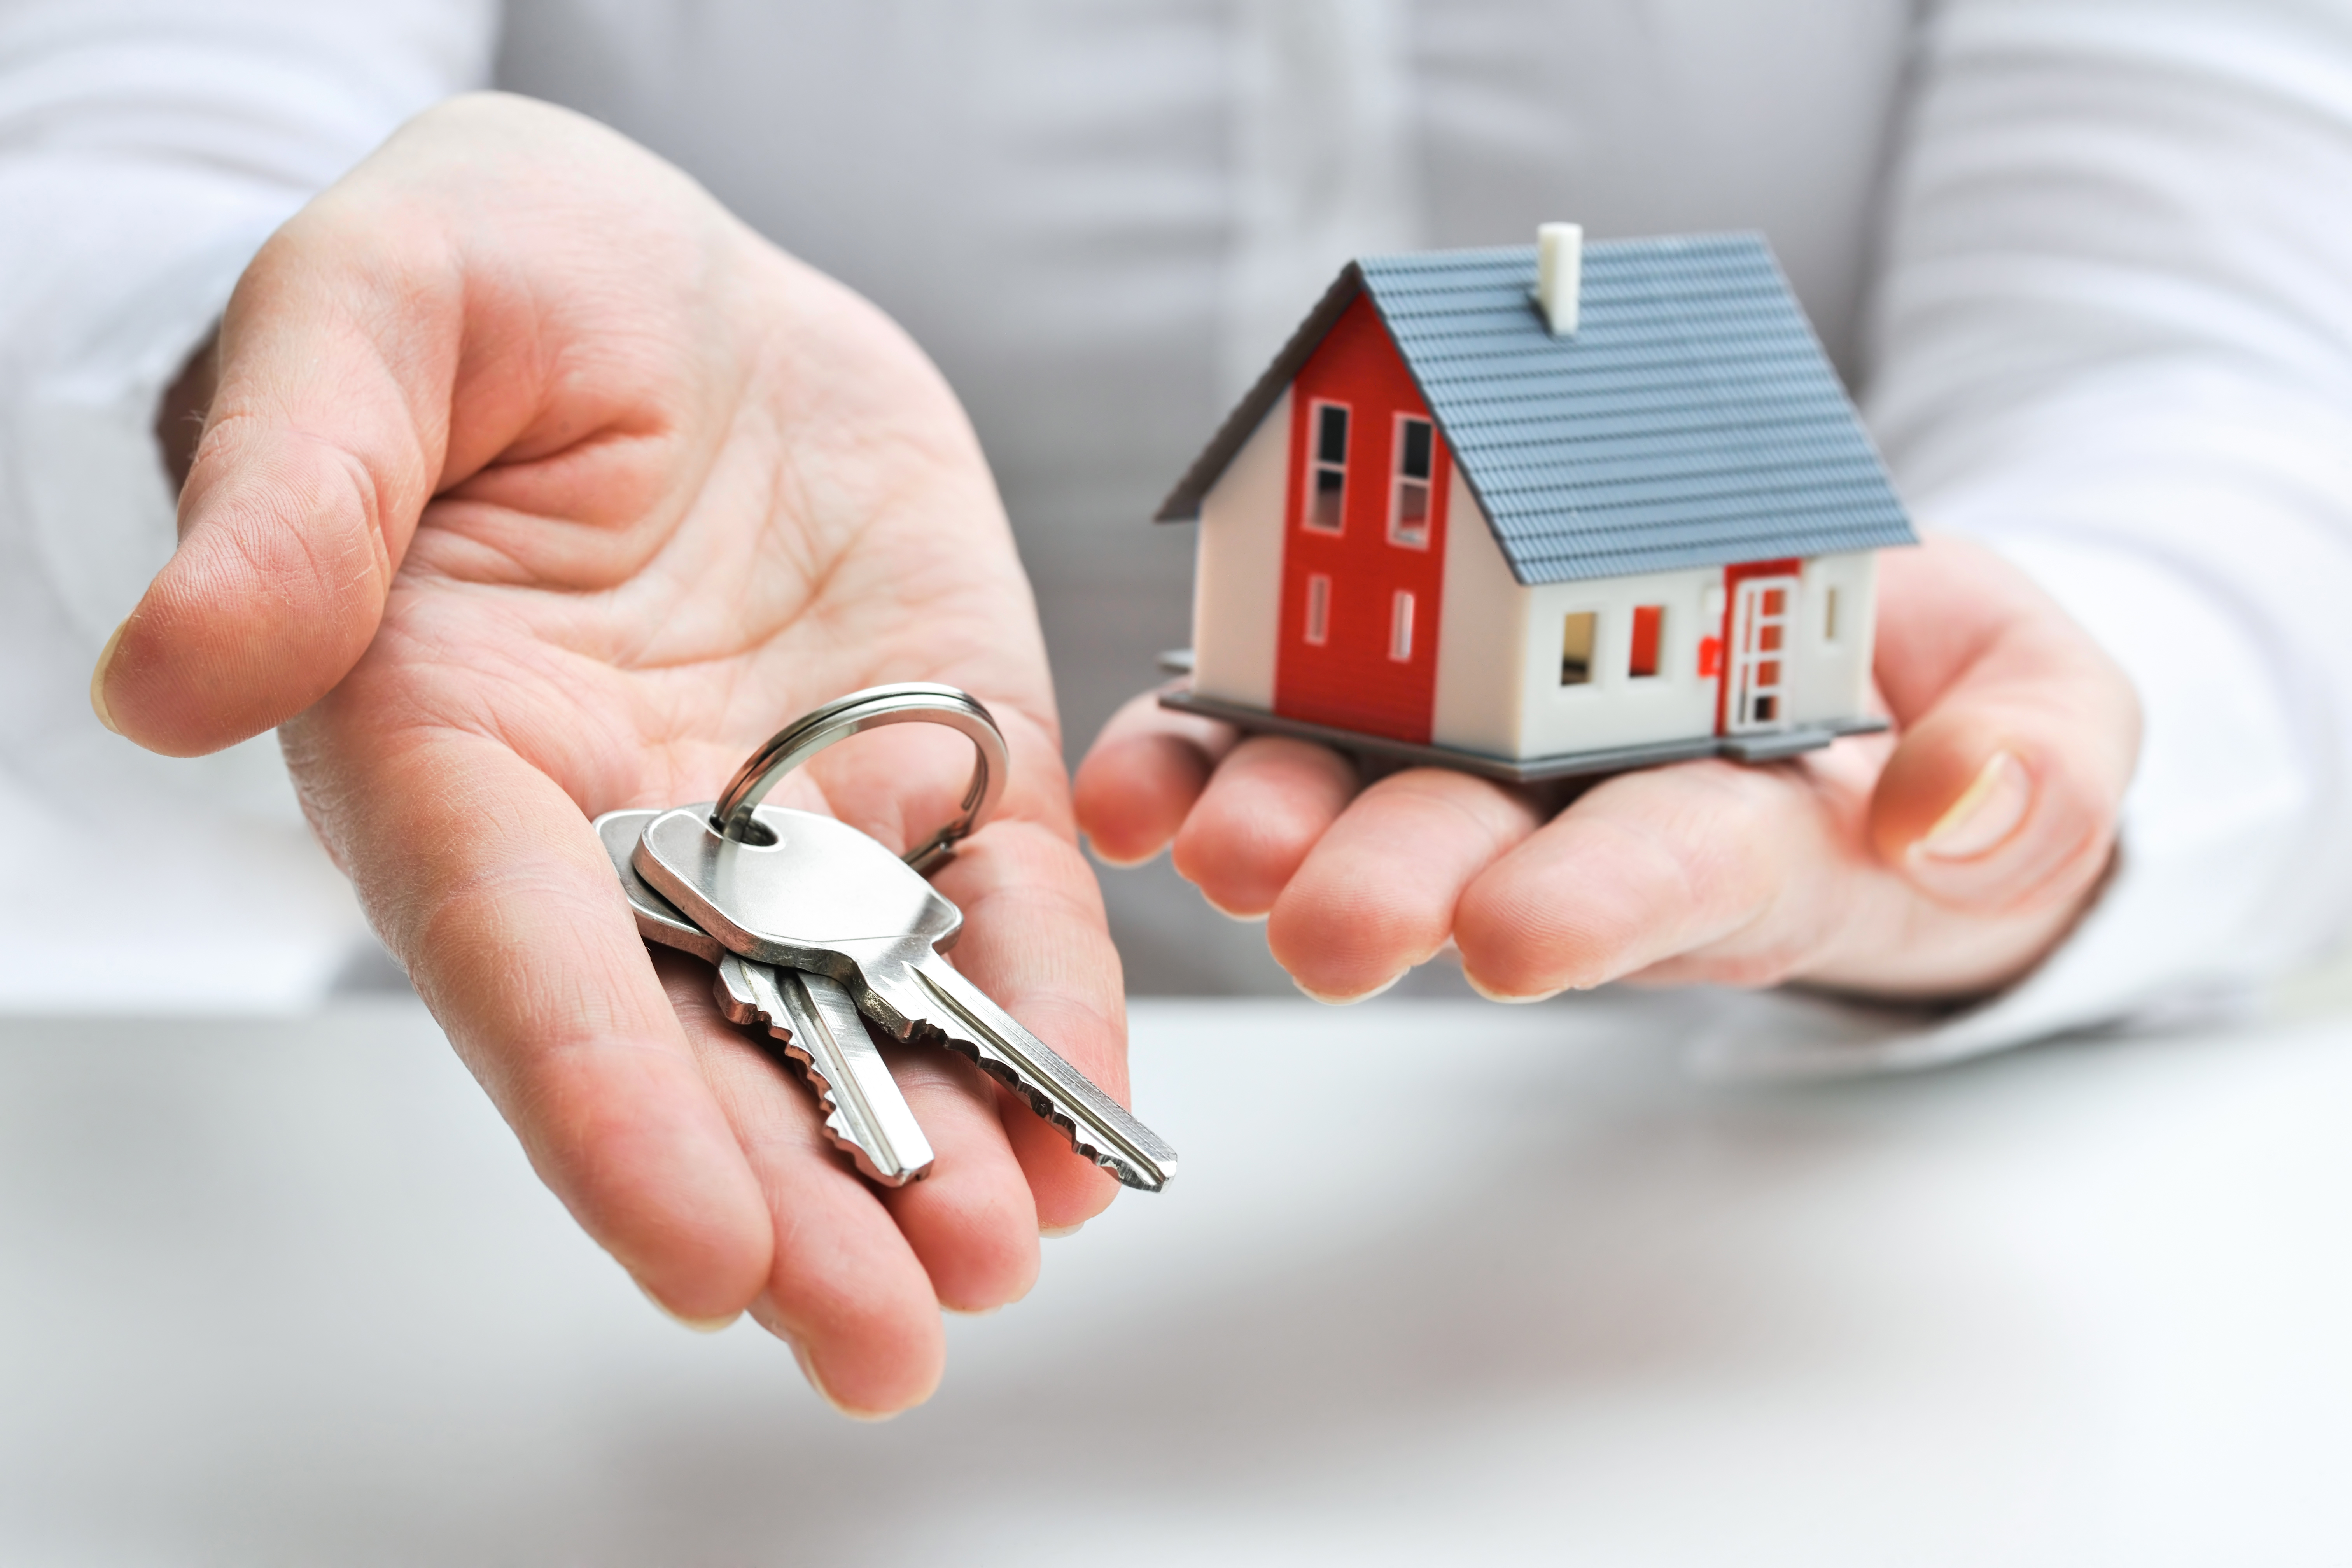 Mortgage Loans You Can Get in India - Finance Buddha Blog - Enlighten Your Finances